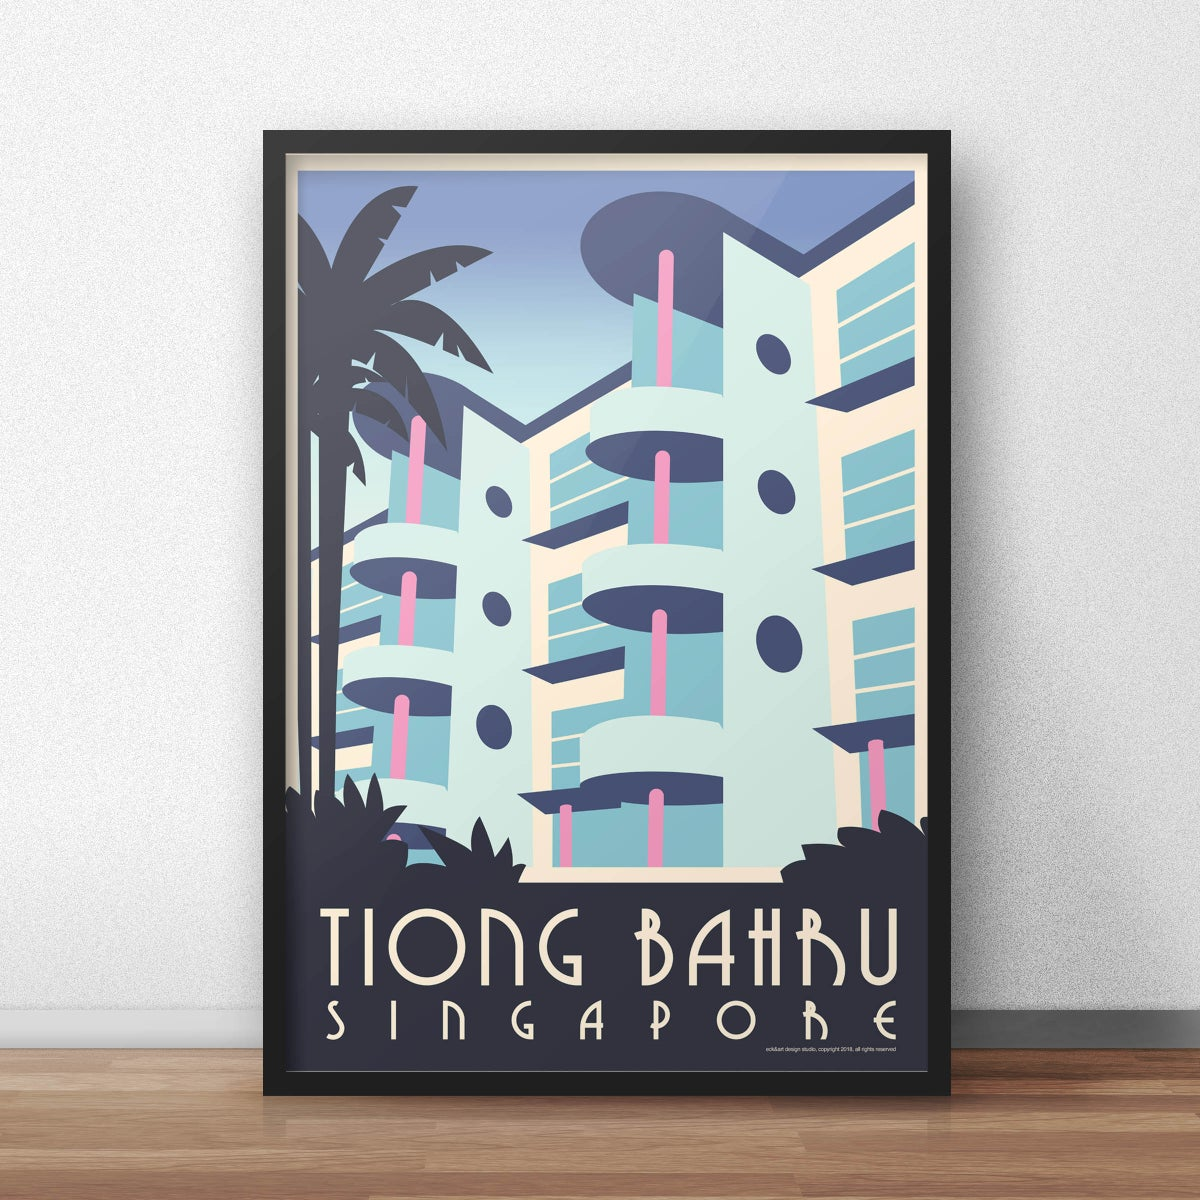 Image of Tiong Bahru Poster